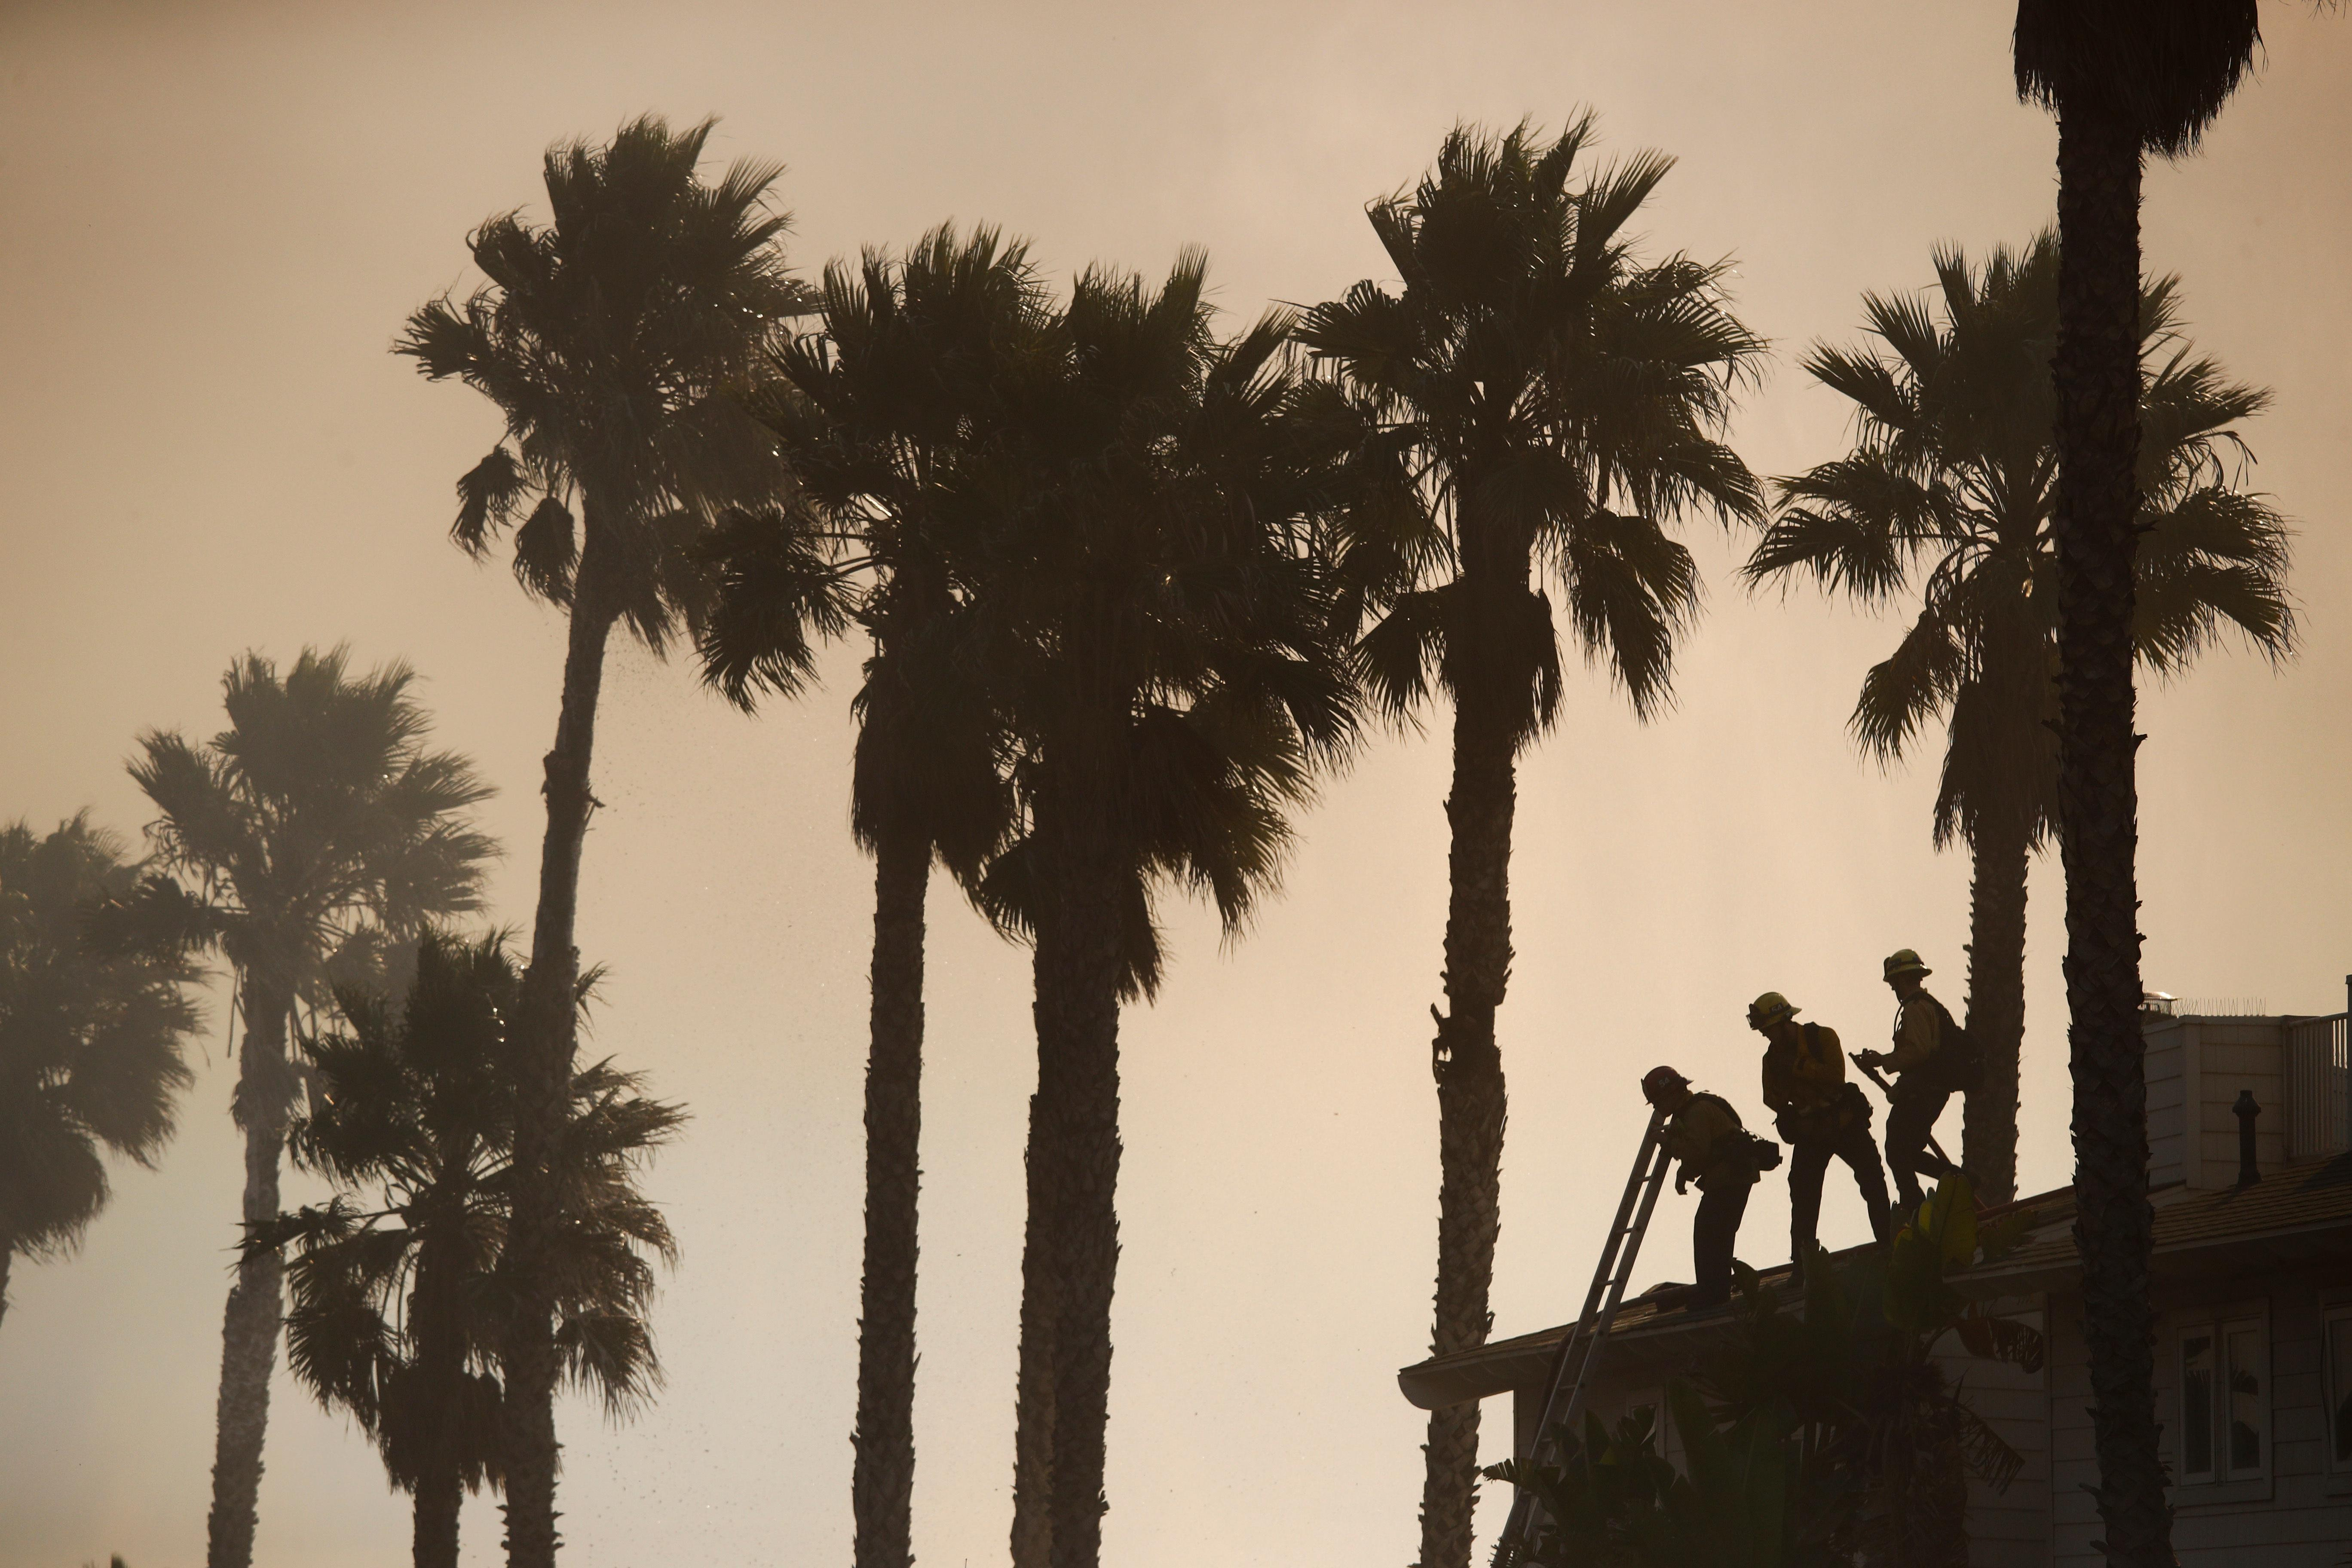 Three firefighters stand on the rooftop of a beach house to water down the property while battling a wildfire at Faria State Beach in Ventura, Calif., Thursday, Dec. 7, 2017. The wind-swept blazes have forced tens of thousands of evacuations and destroyed dozens of homes. (AP Photo/Jae C. Hong)